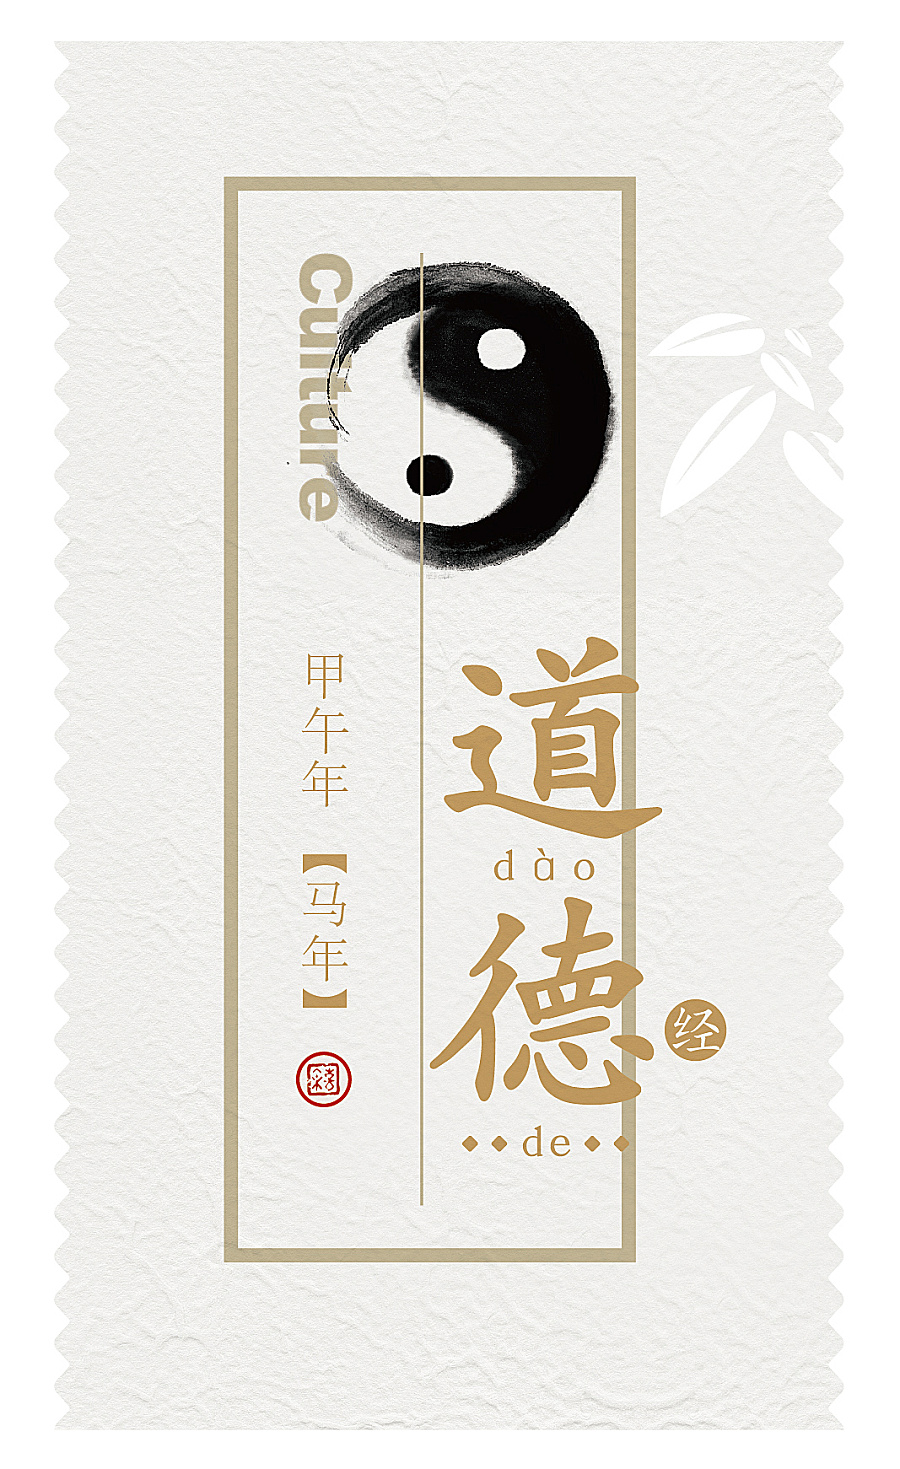 chinesefontdesign.com 2016 12 02 21 18 47 29P  Font design scheme of traditional Chinese style